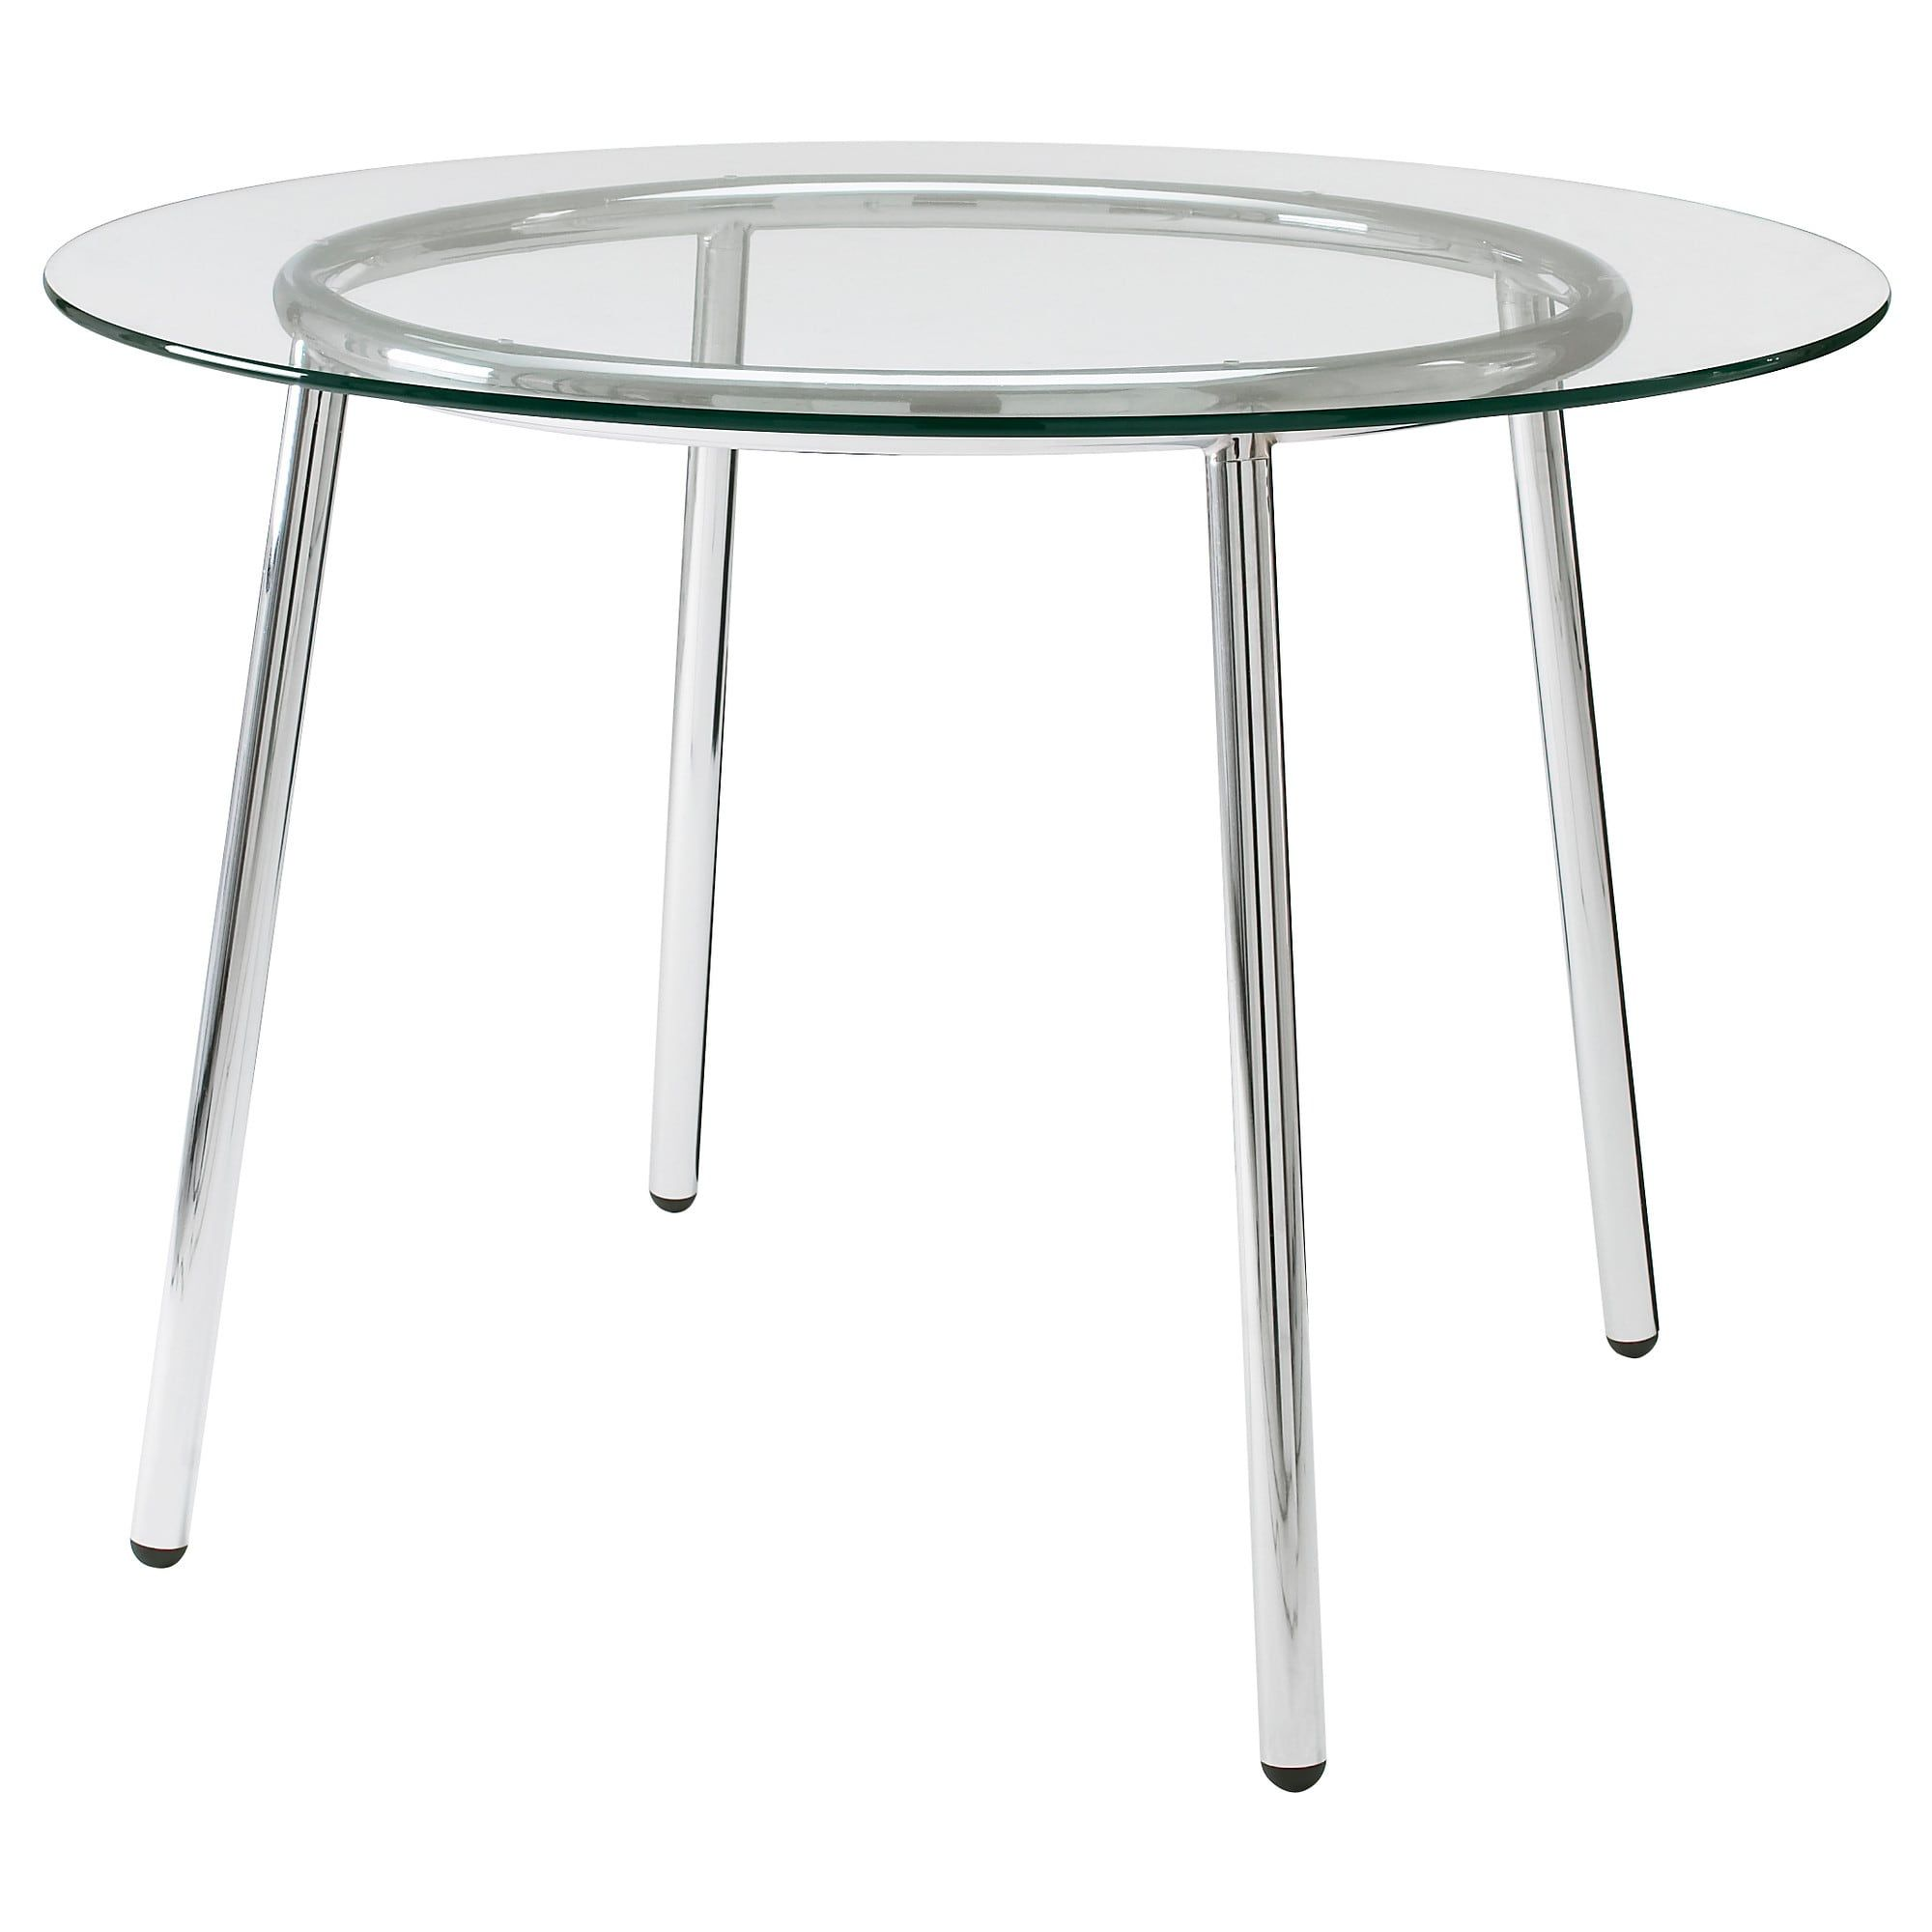 Furniture Home Furnishings Find Your Inspiration Round Dining Table Modern Round Glass Table Glass Top Dining Table